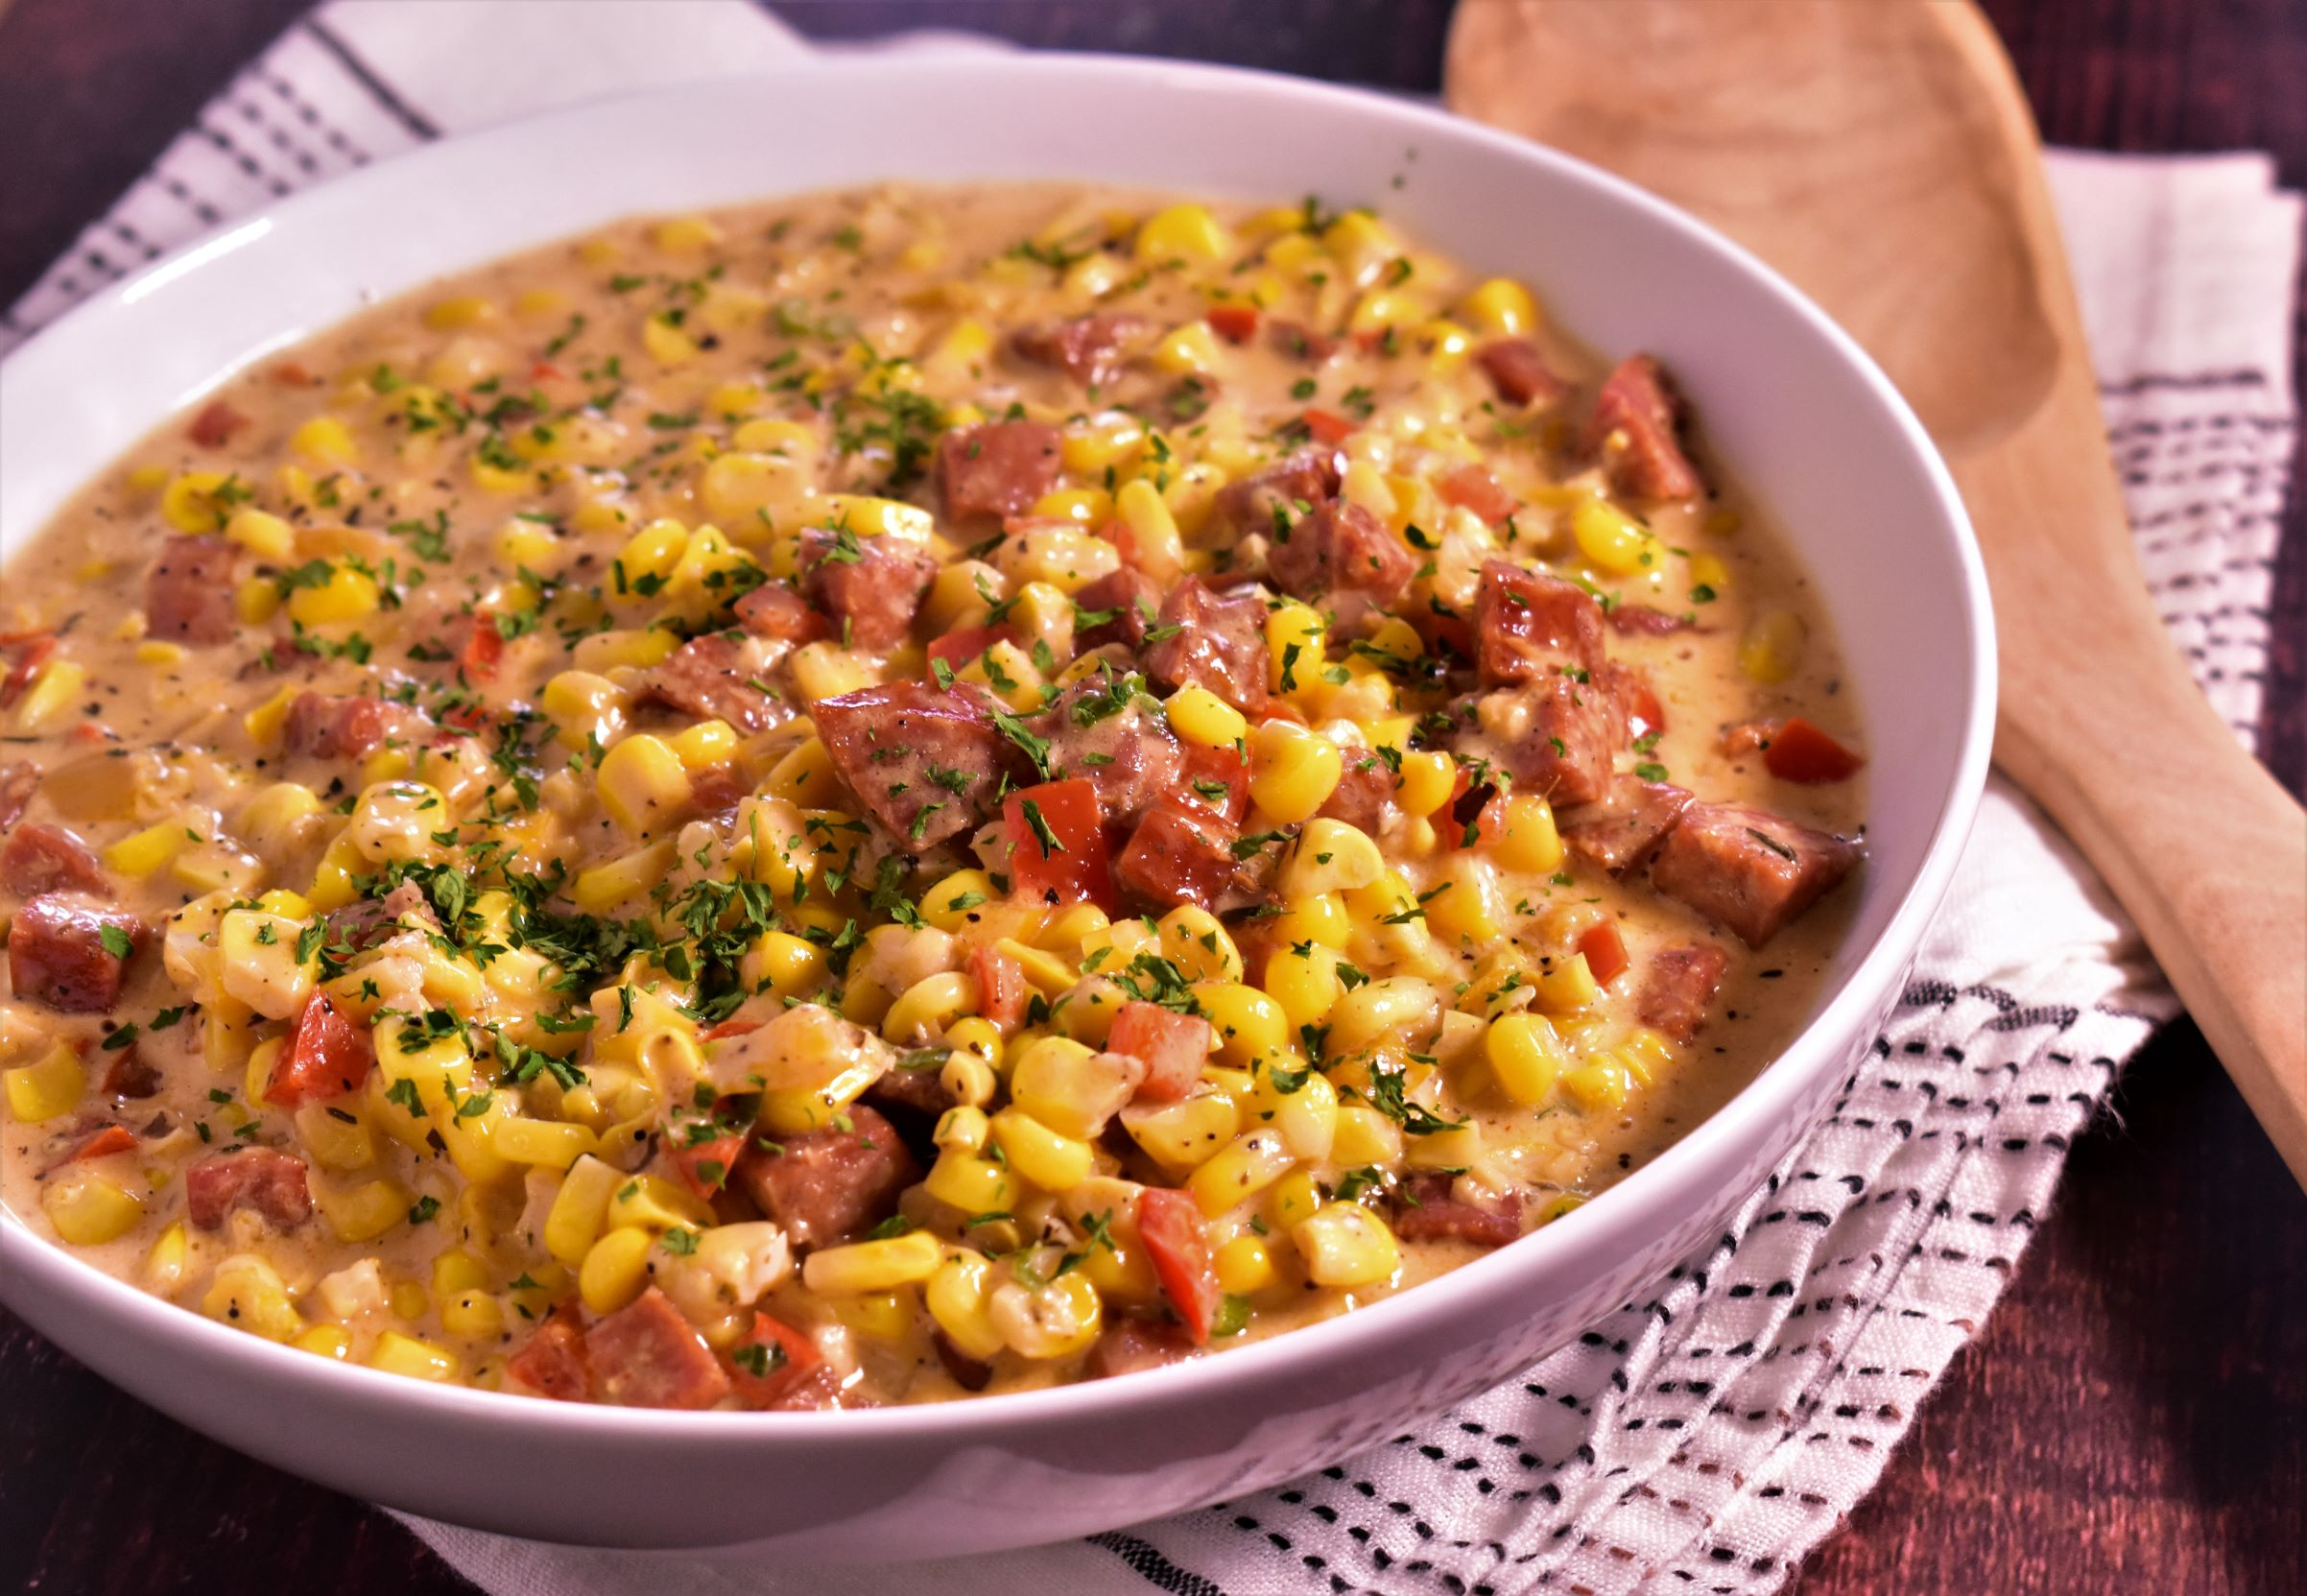 Creamed Corn with Smoky Andouille Sausage